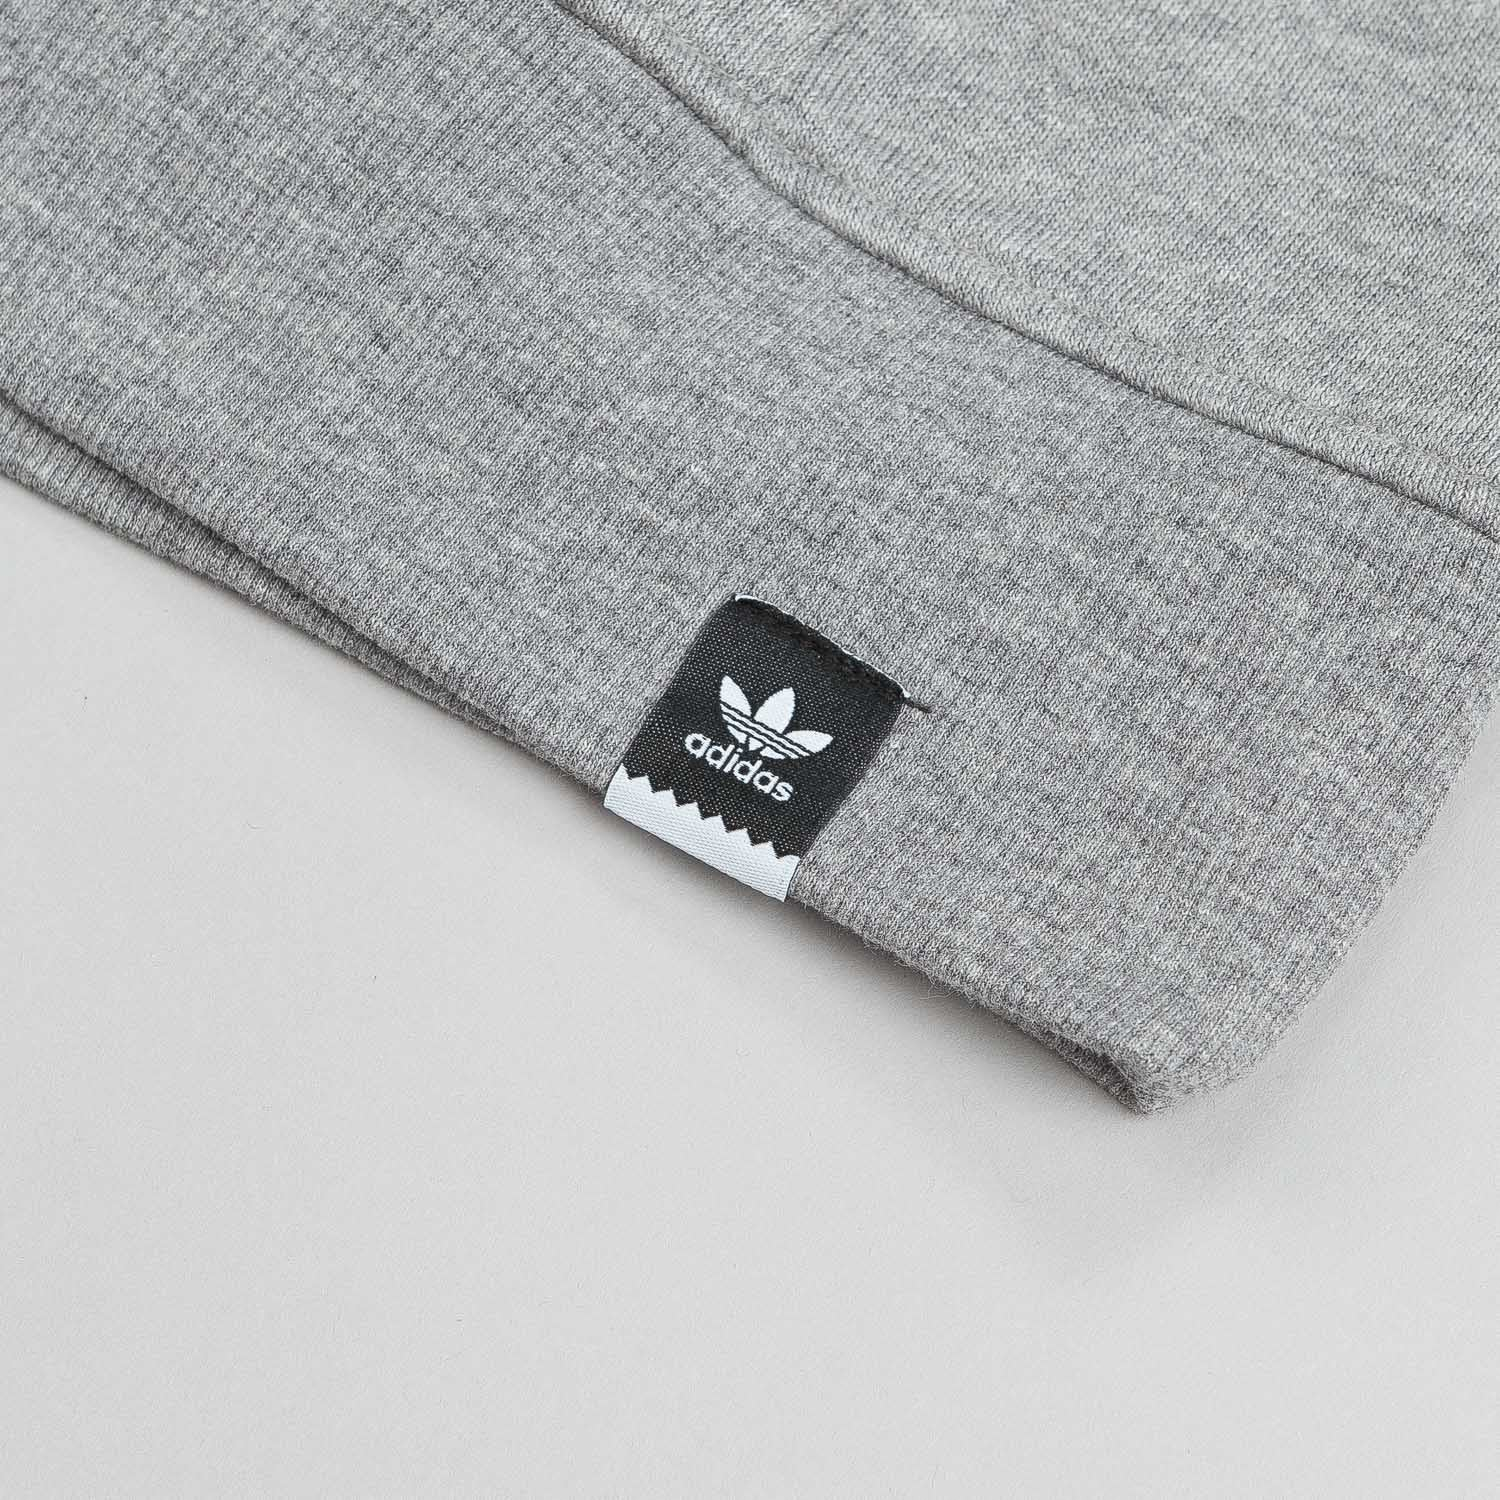 Adidas Adv 2.0 Hooded Sweatshirt - Core Heather Grey / Core Navy